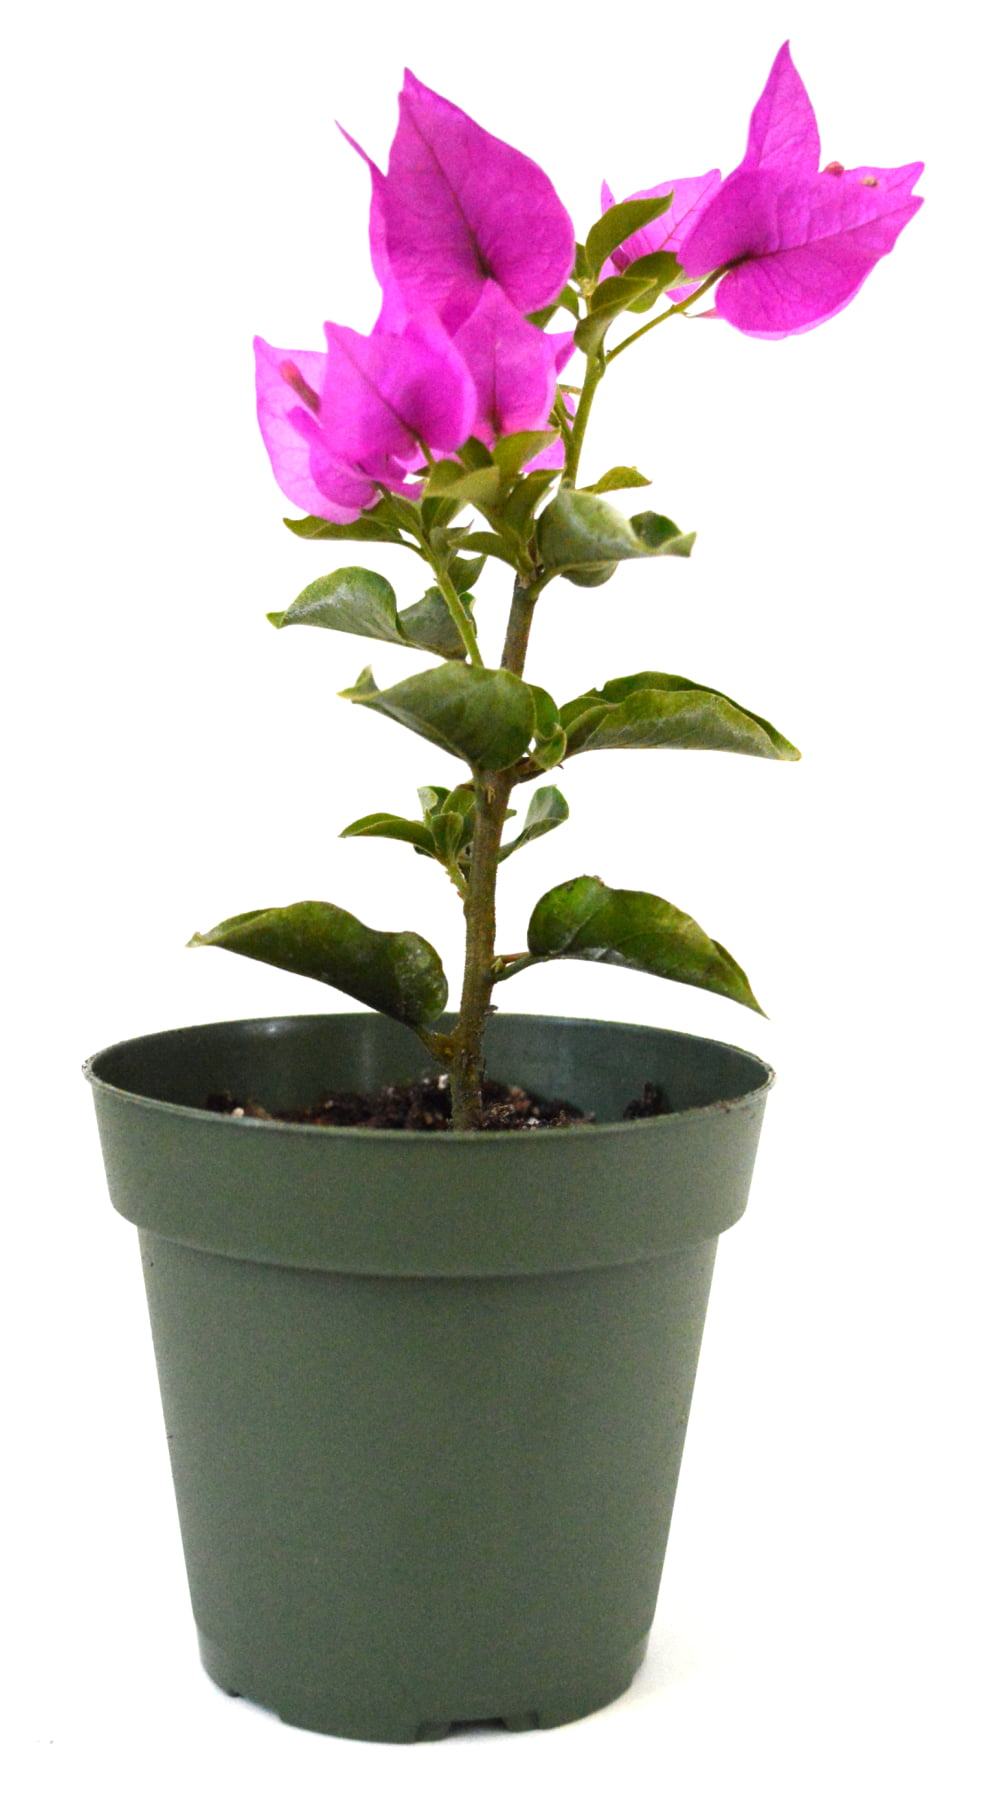 "9GreenBox Royal Purple Bougainvillea Plant -Indoors Out or Bonsai 4"" Pot by 9GreenBox"